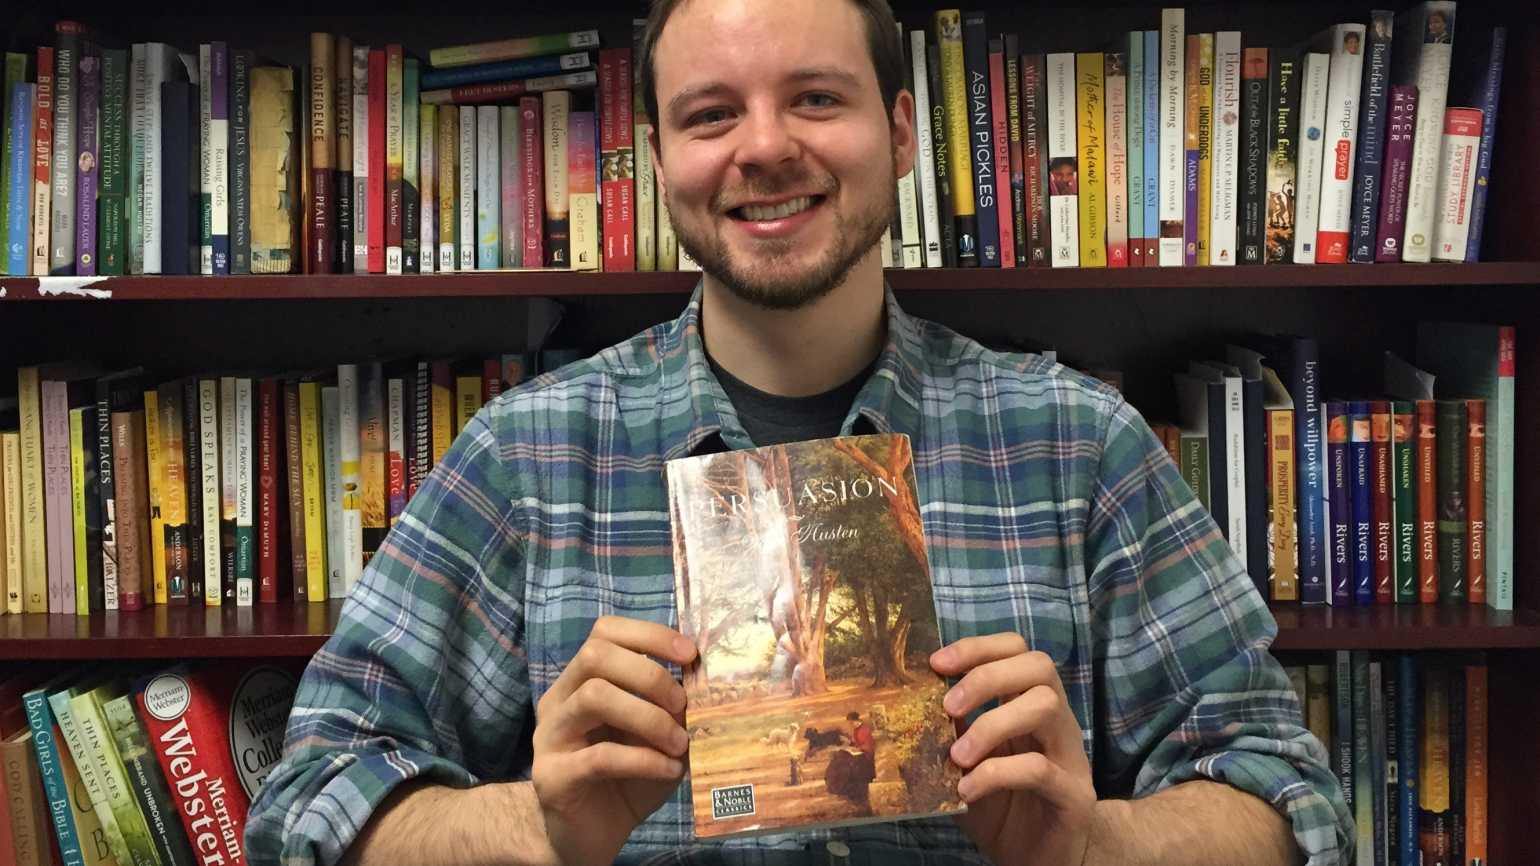 Daniel Kessel holding his copy of Jane Austen's Persuasion.